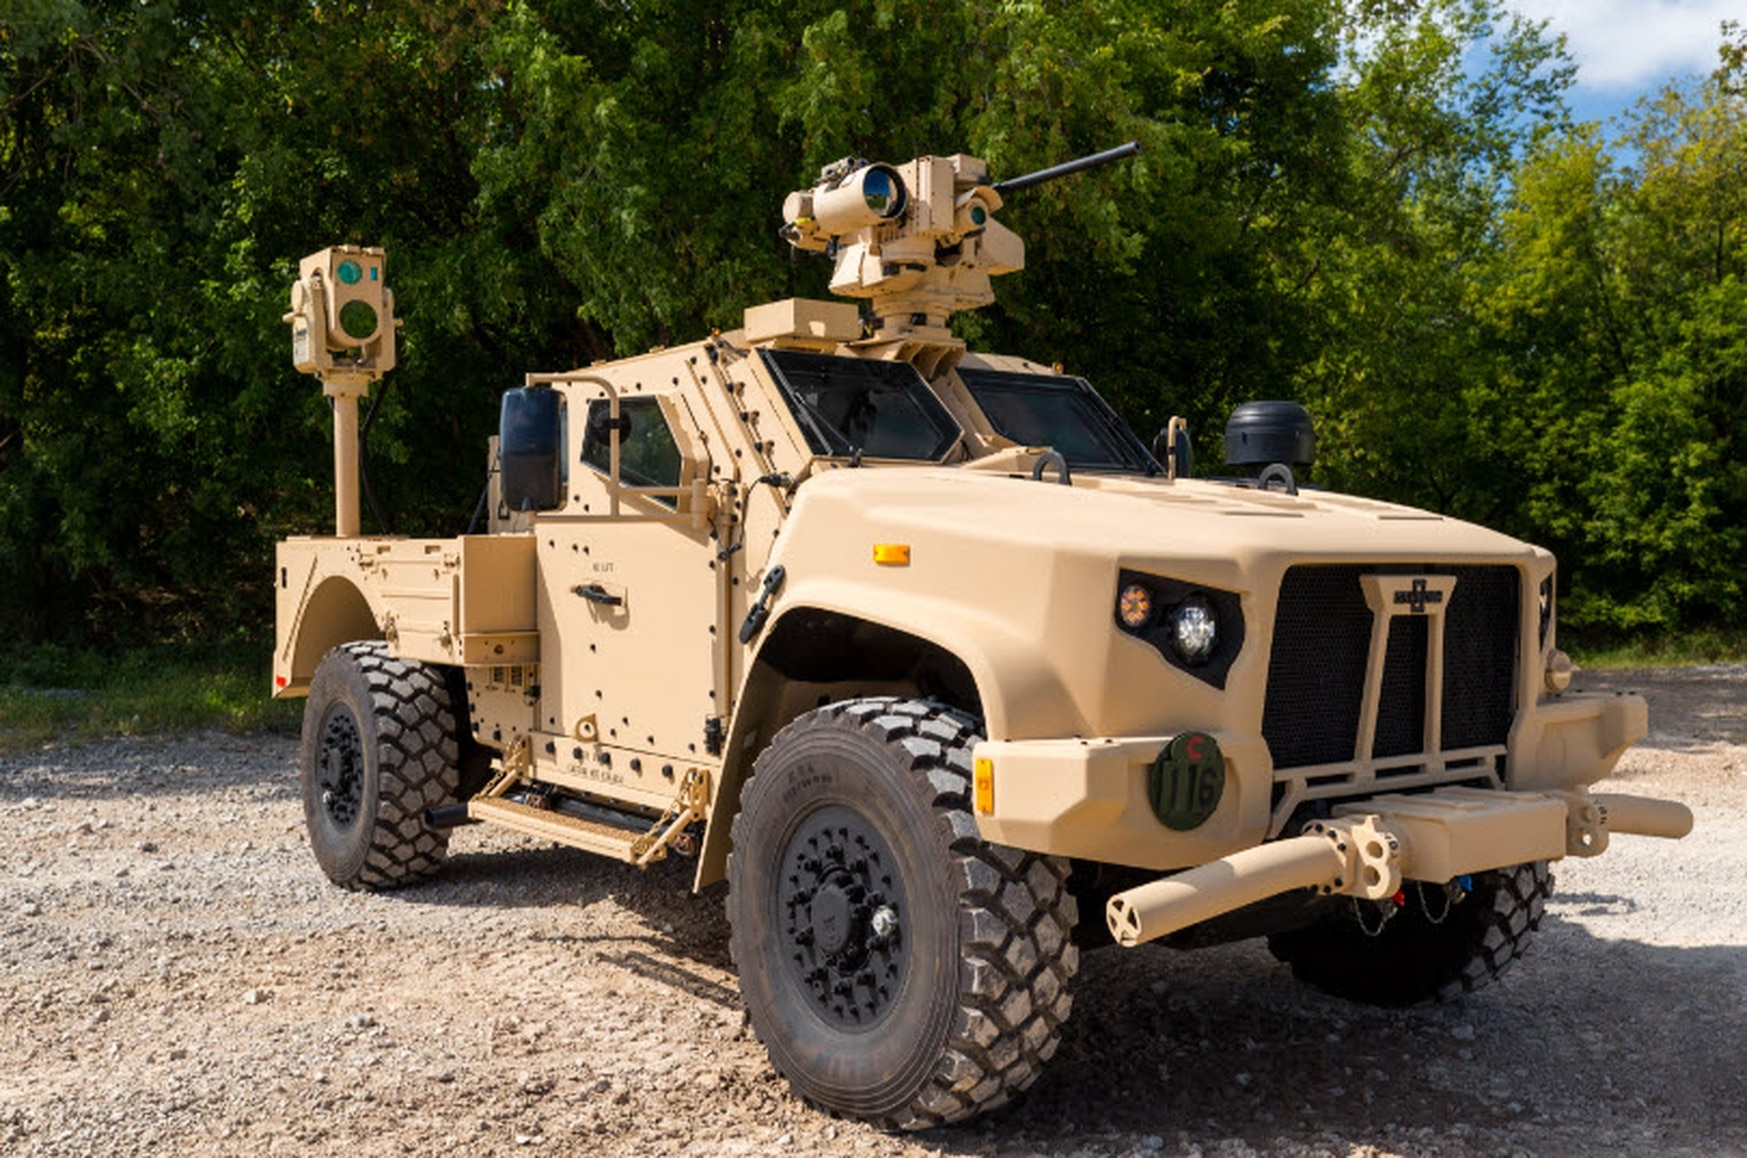 The Compact Laser Weapon System is a medium-range, low-power device that soldiers and Marines can use to counter drones and other threats. (Boeing)